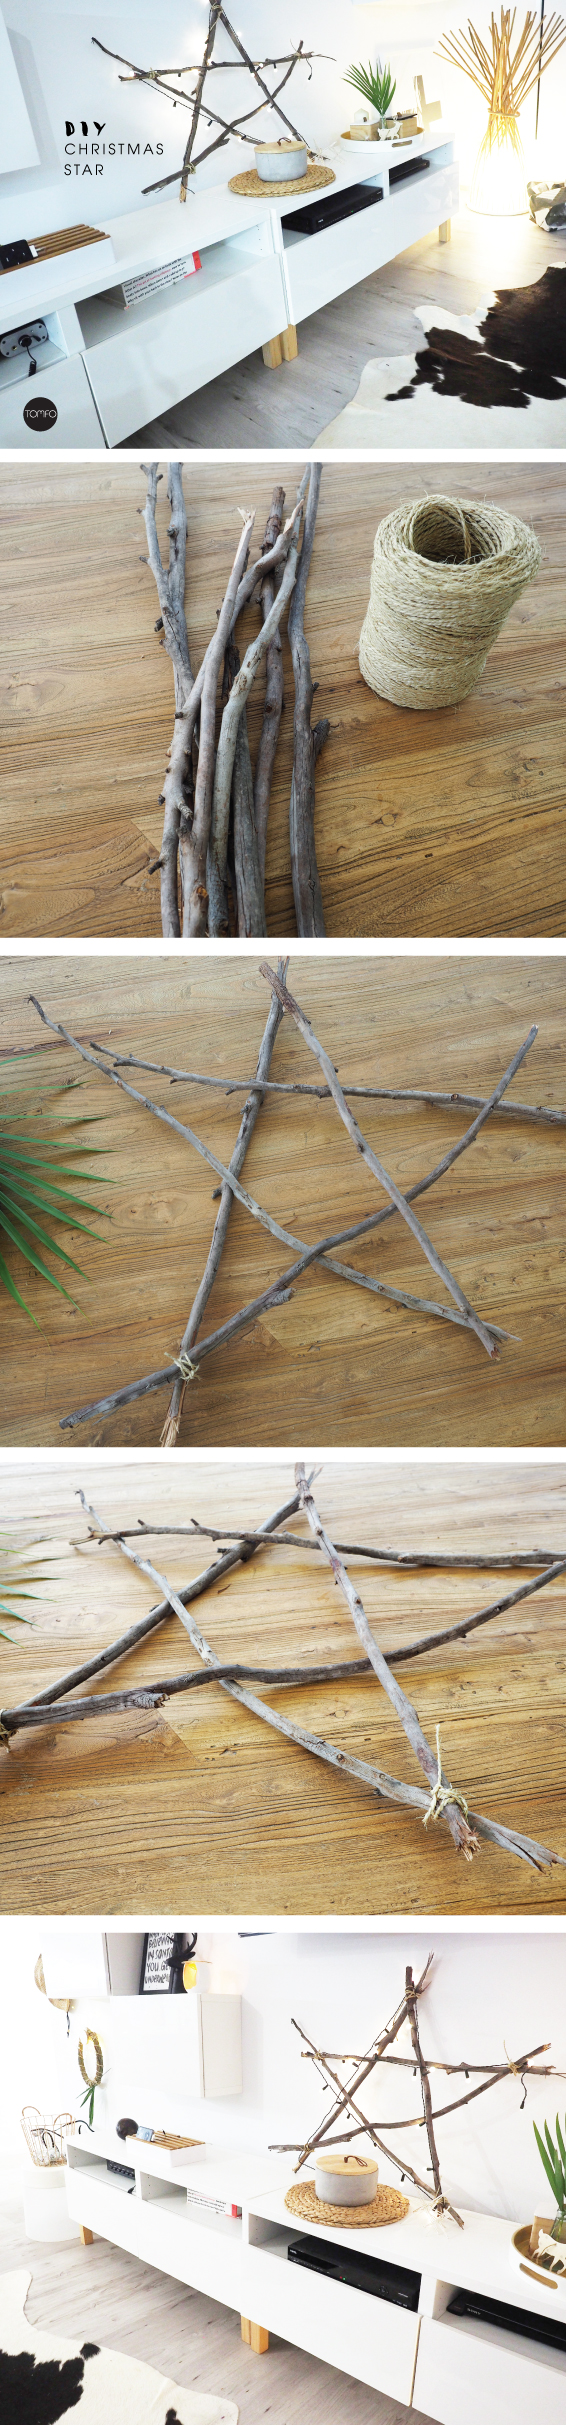 diy-christmas-star